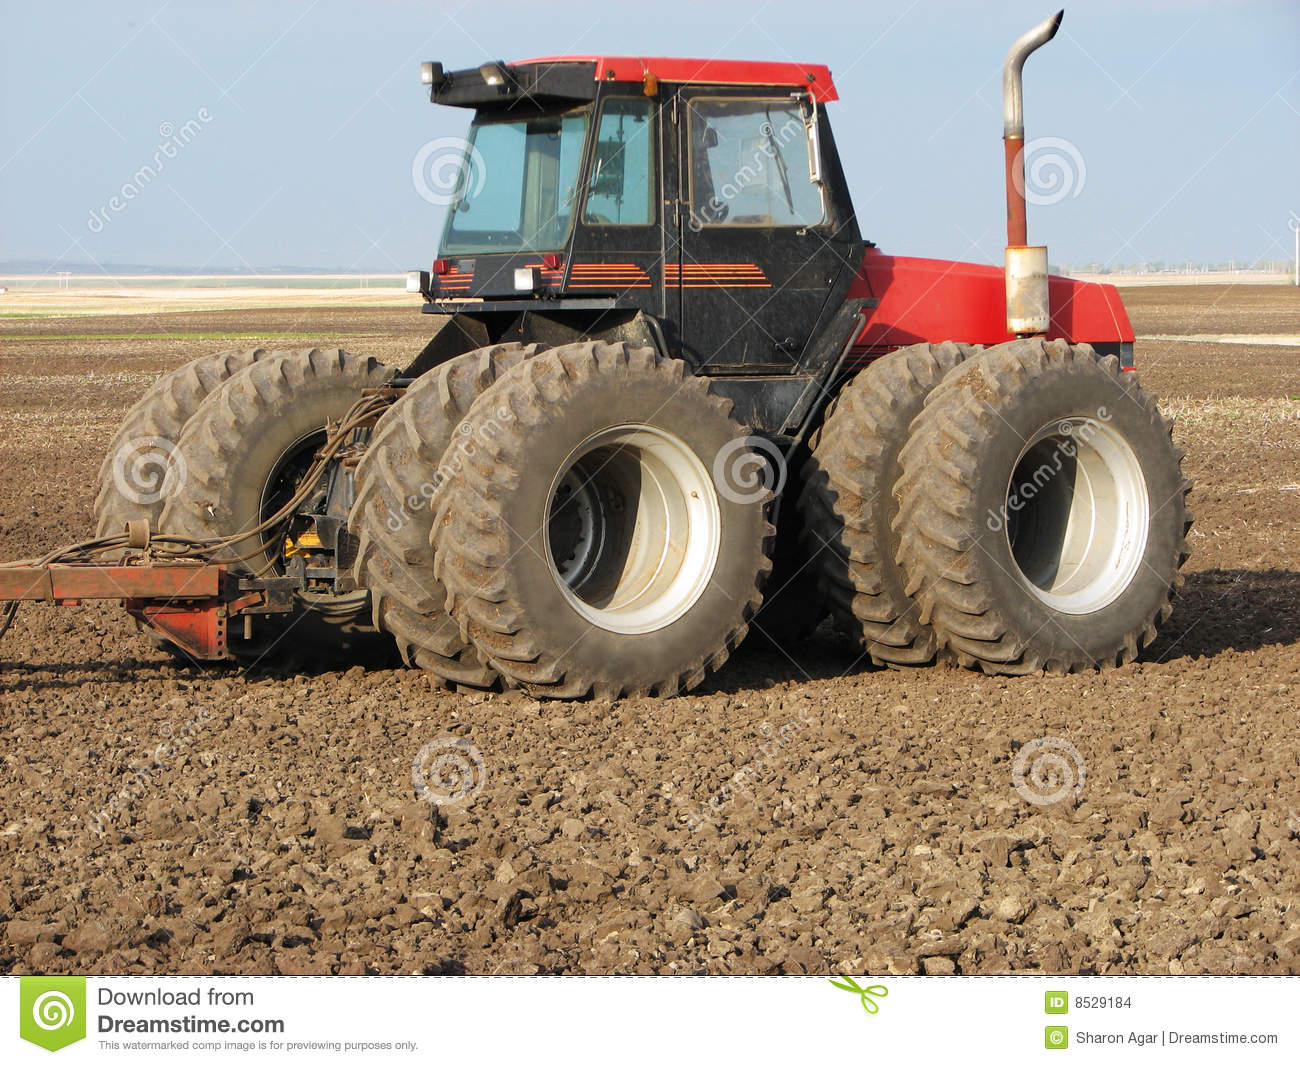 Picture Of A Red And Black Four Wheel Drive Tractor In Summer Fallow